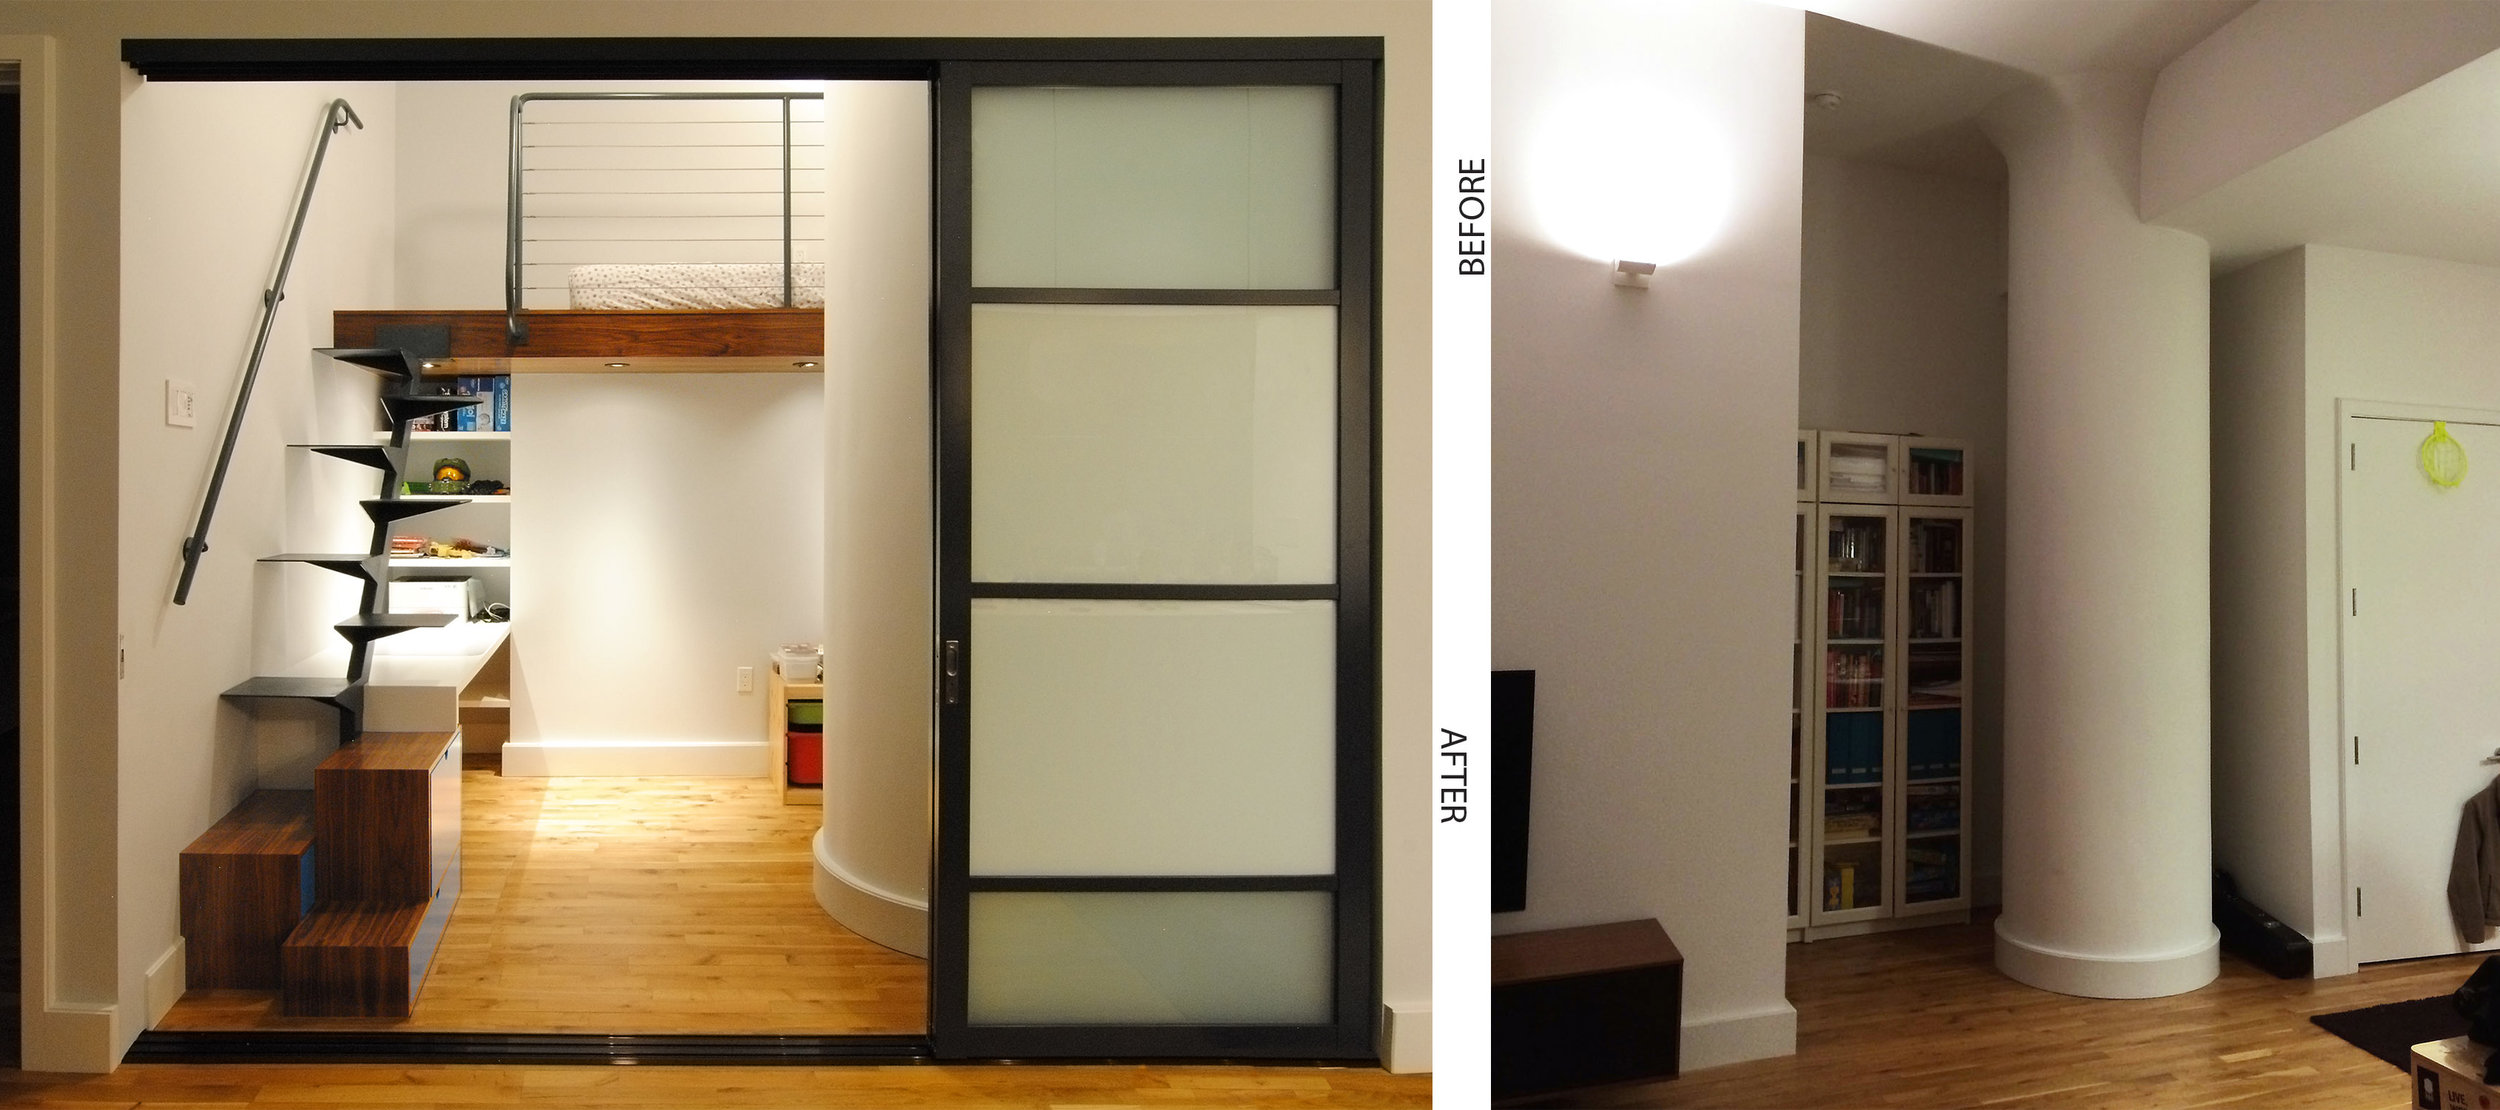 Room _ before and after.jpg